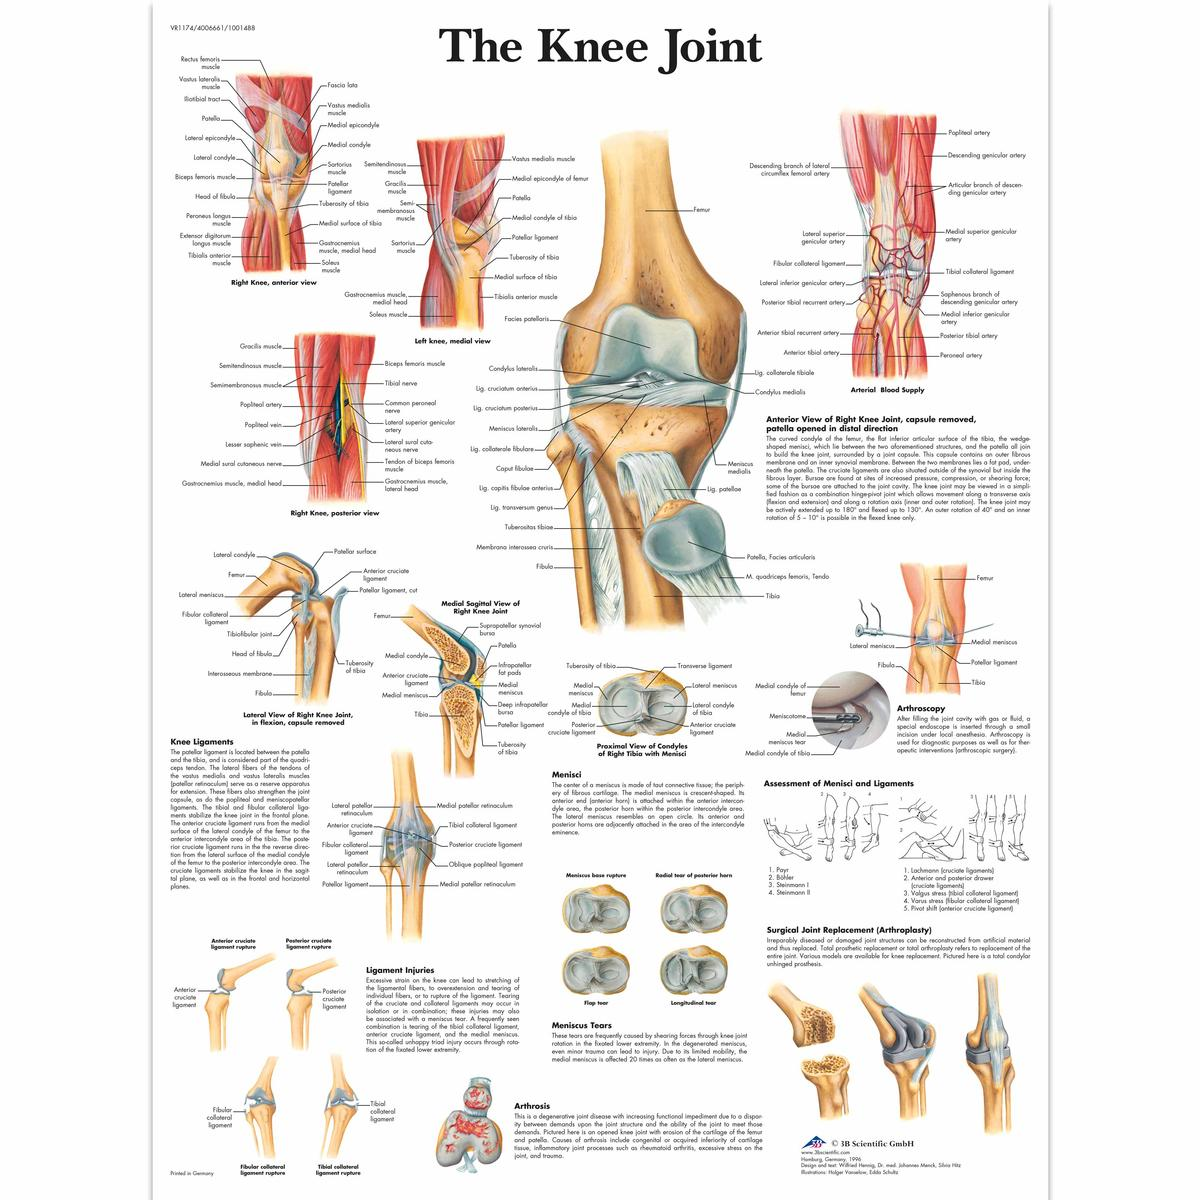 The knee joint anatomical chart ceilblue the knee joint anatomical chart ccuart